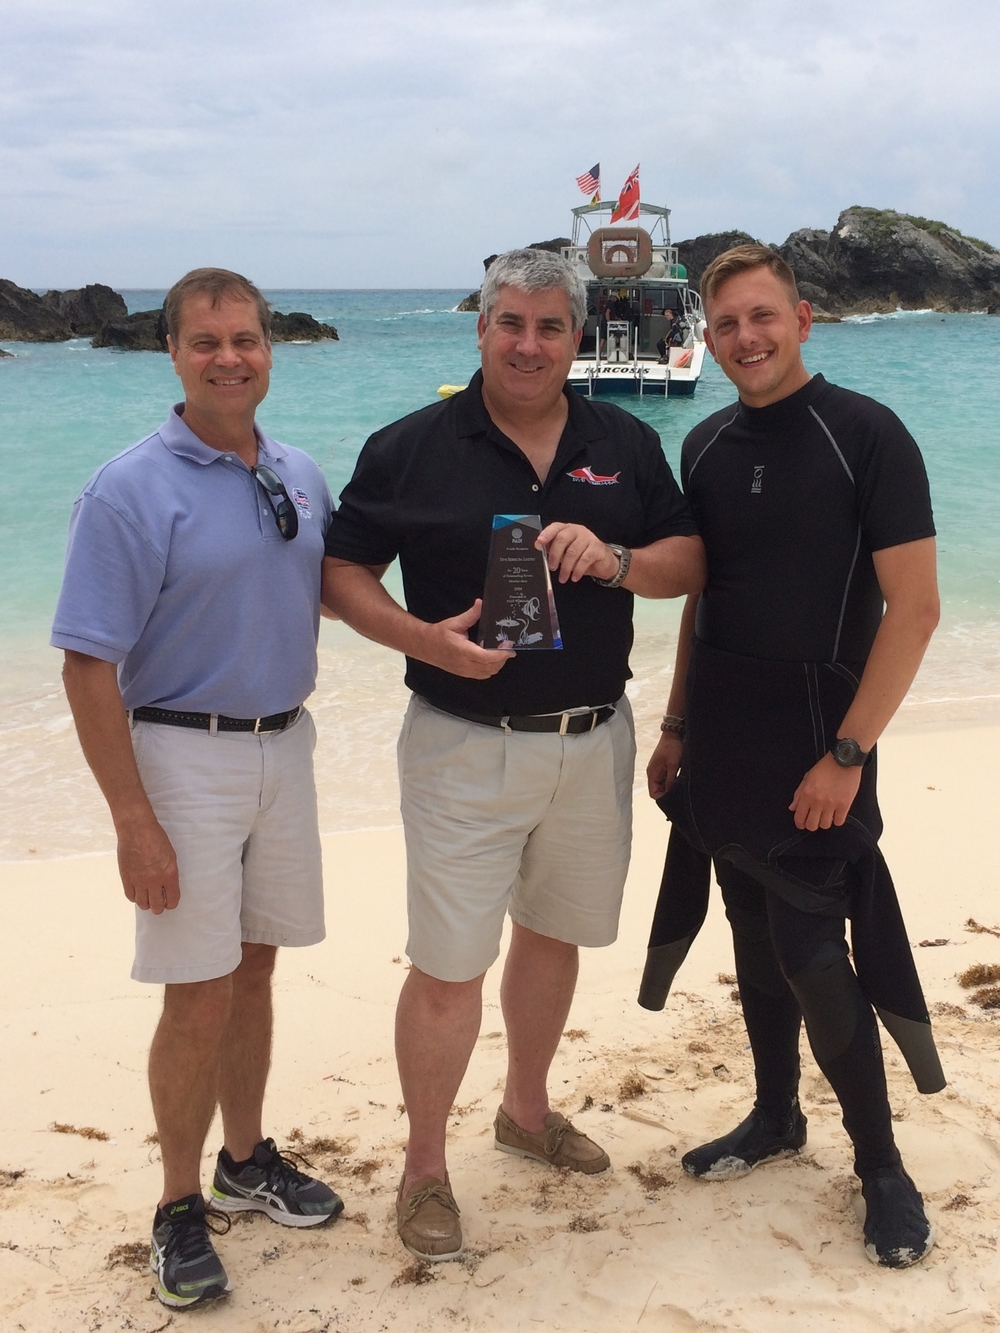 Owner Mark and instructor Matt receiving an award for 20 years of outstanding service from PADI Regional Manager Bill Hamm.